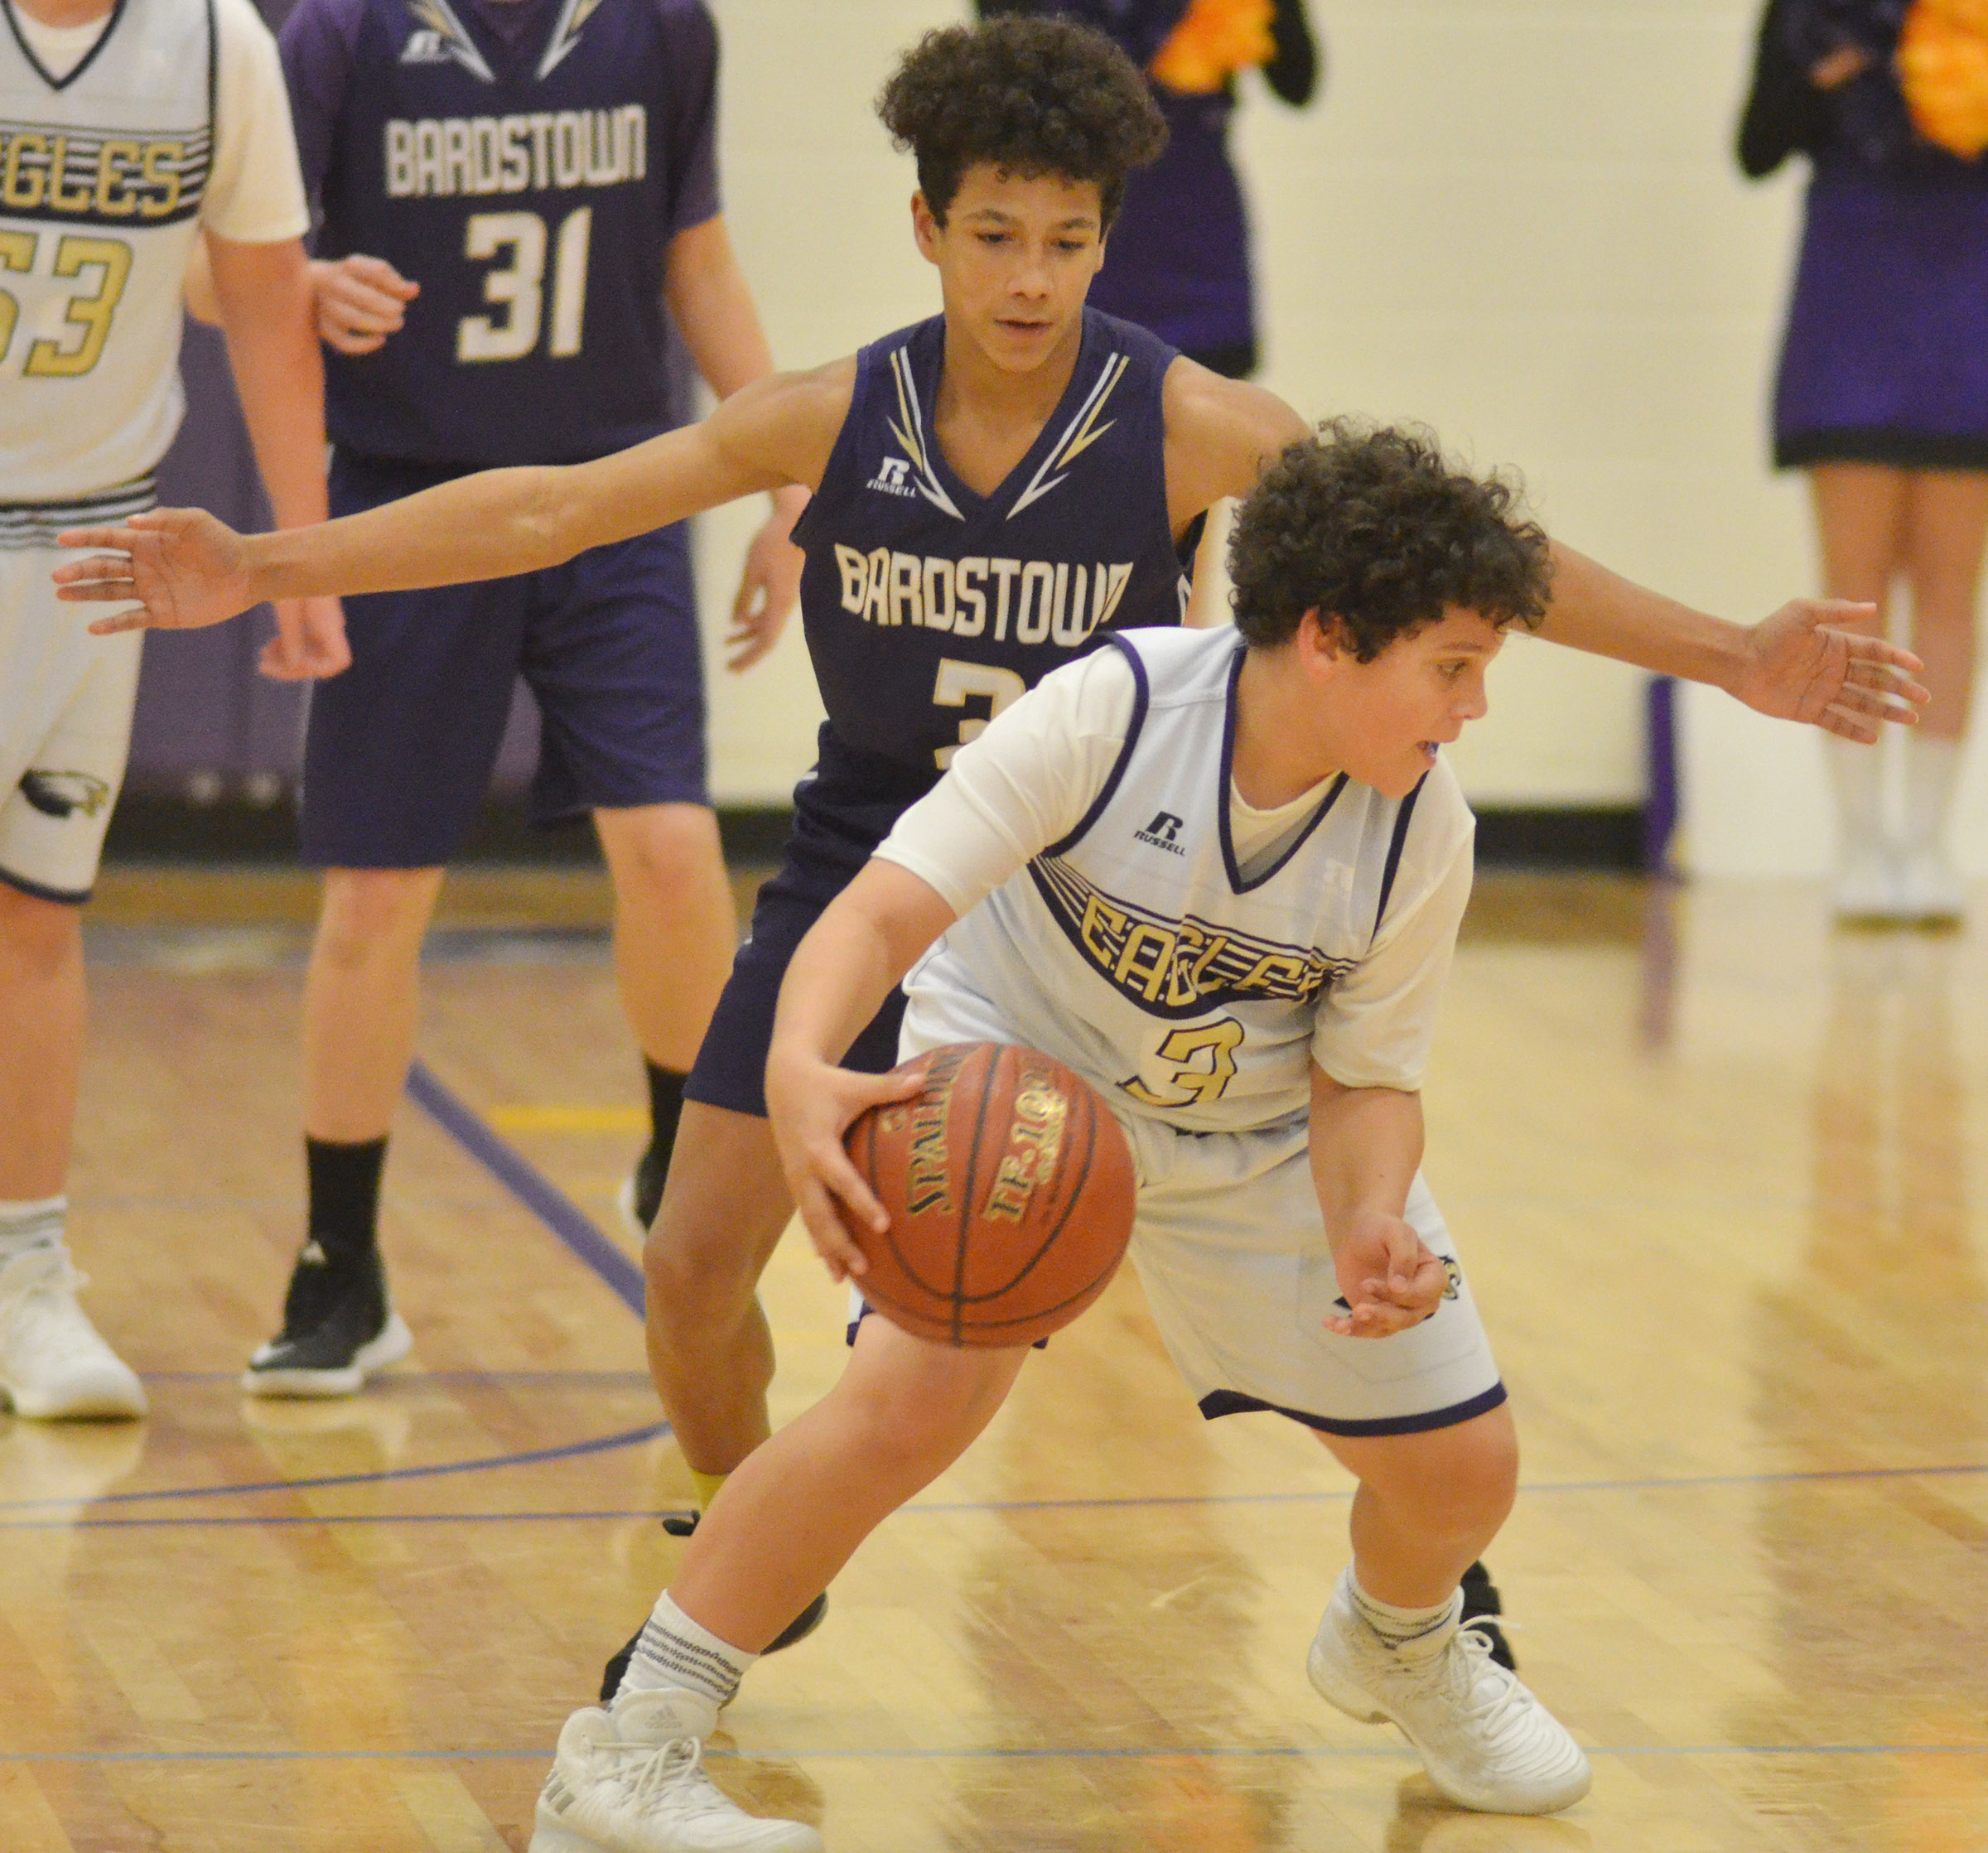 CMS seventh-grader Kaydon Taylor protects the ball.